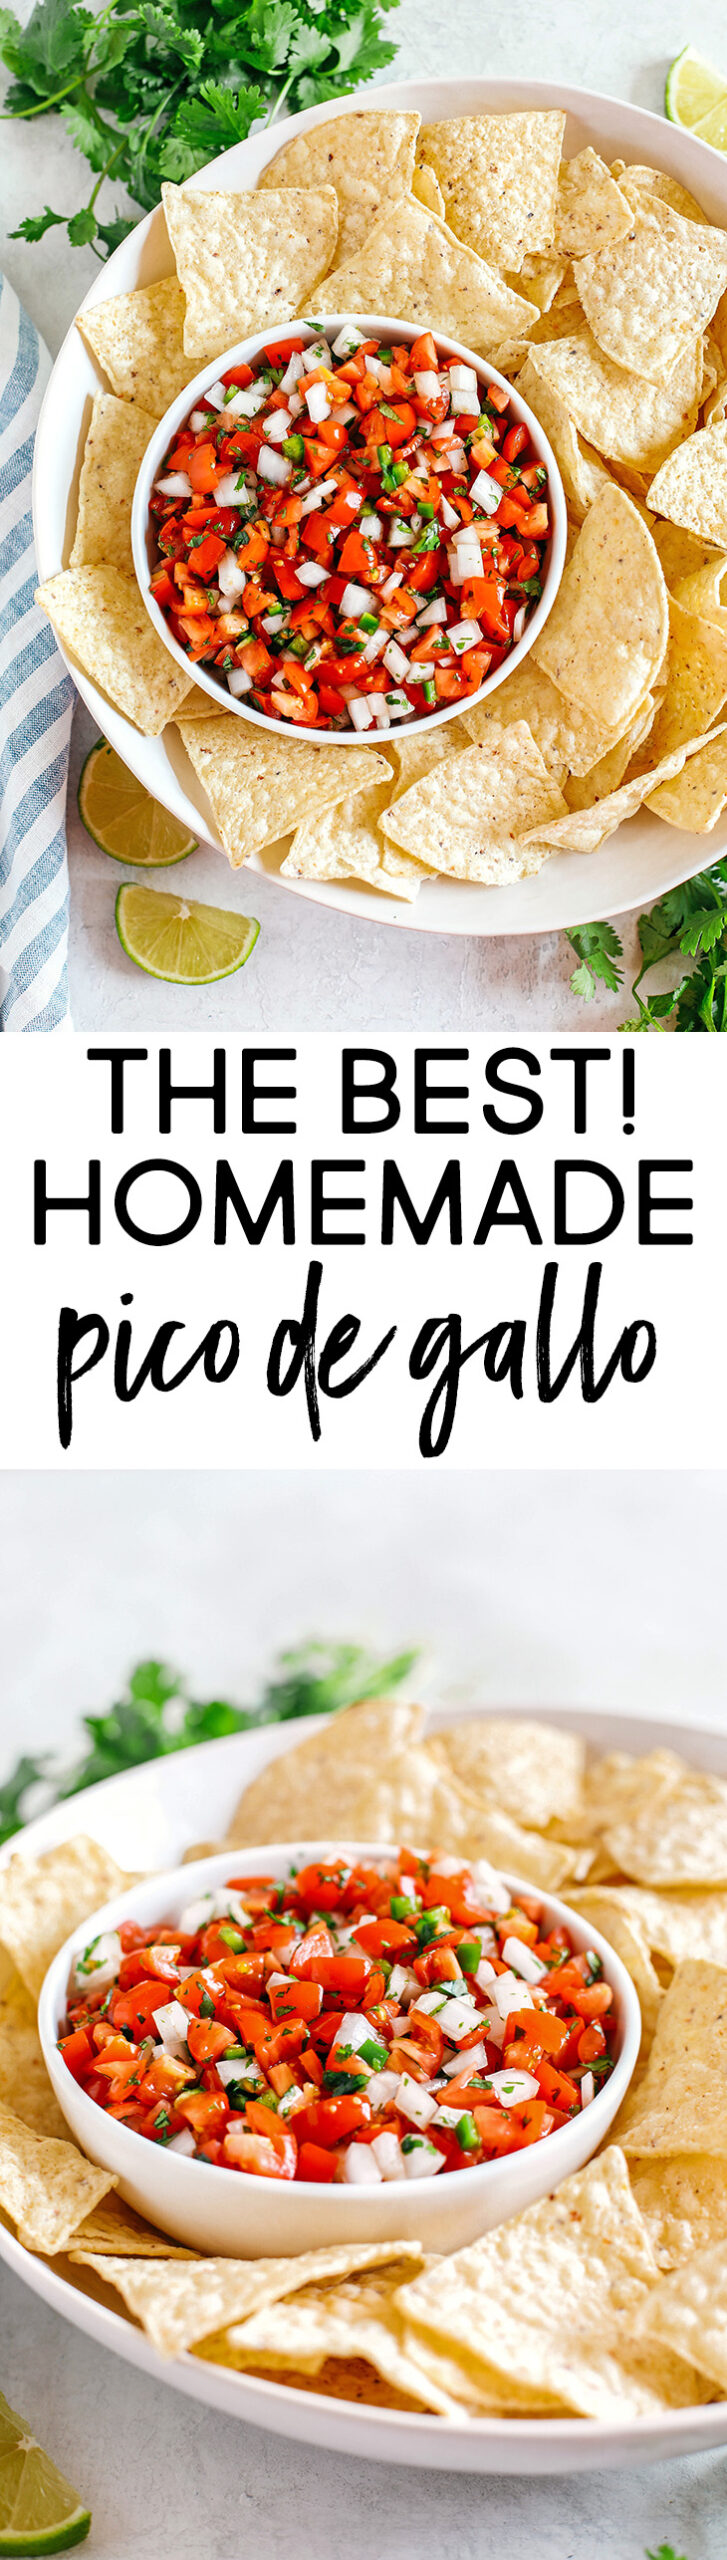 Fresh Homemade Pico De Gallo made with just a few simple ingredients for the perfect flavor boost to any healthy meal or serve as a delicious salsa with chips!